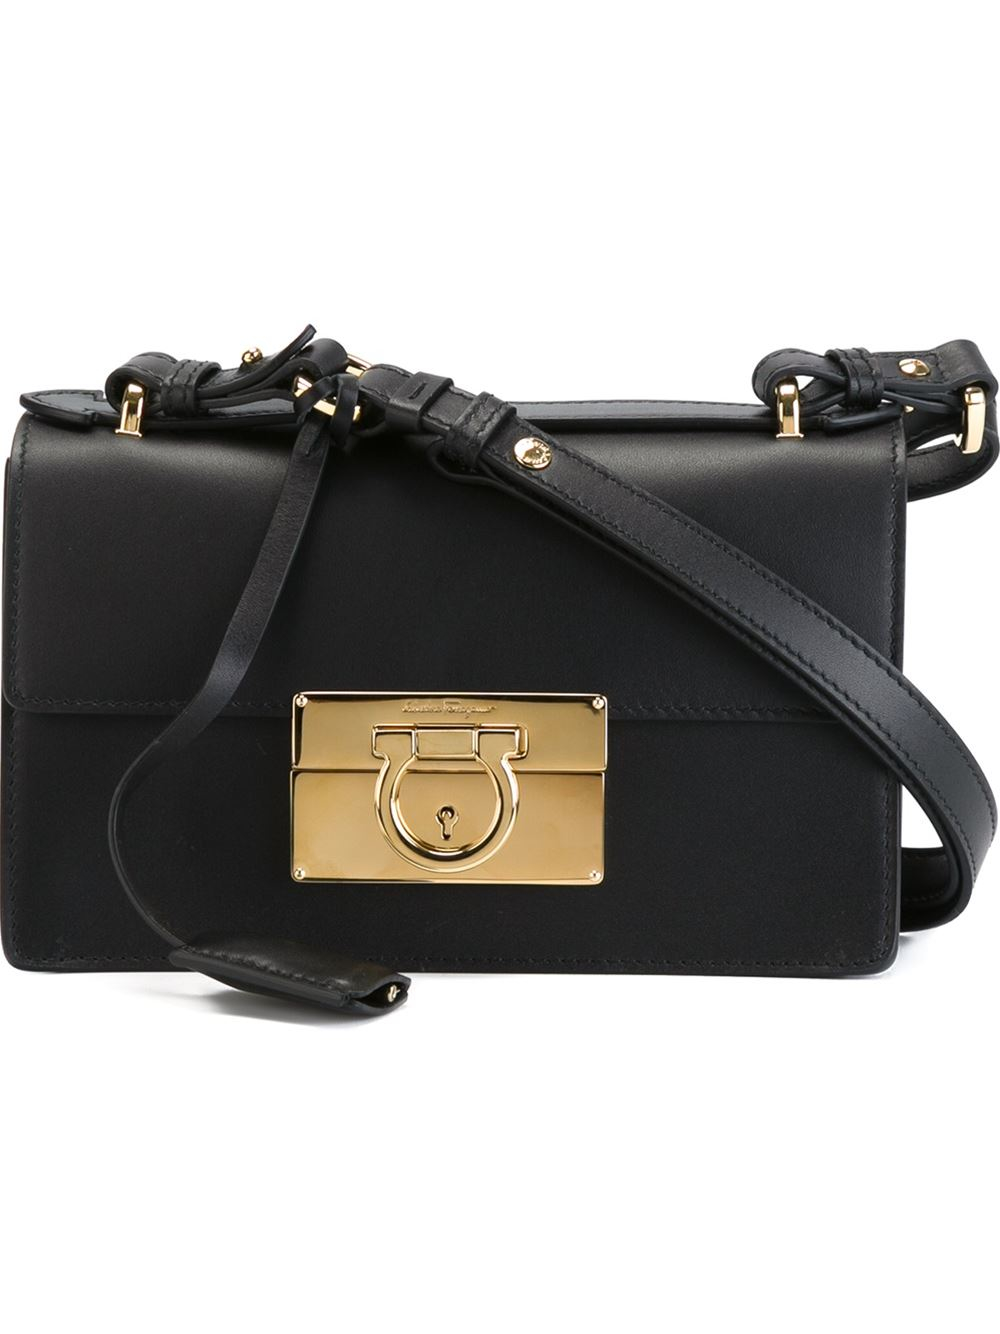 Lyst - Ferragamo Aileen Shoulder Bag in Black 4fa860da4ddd4